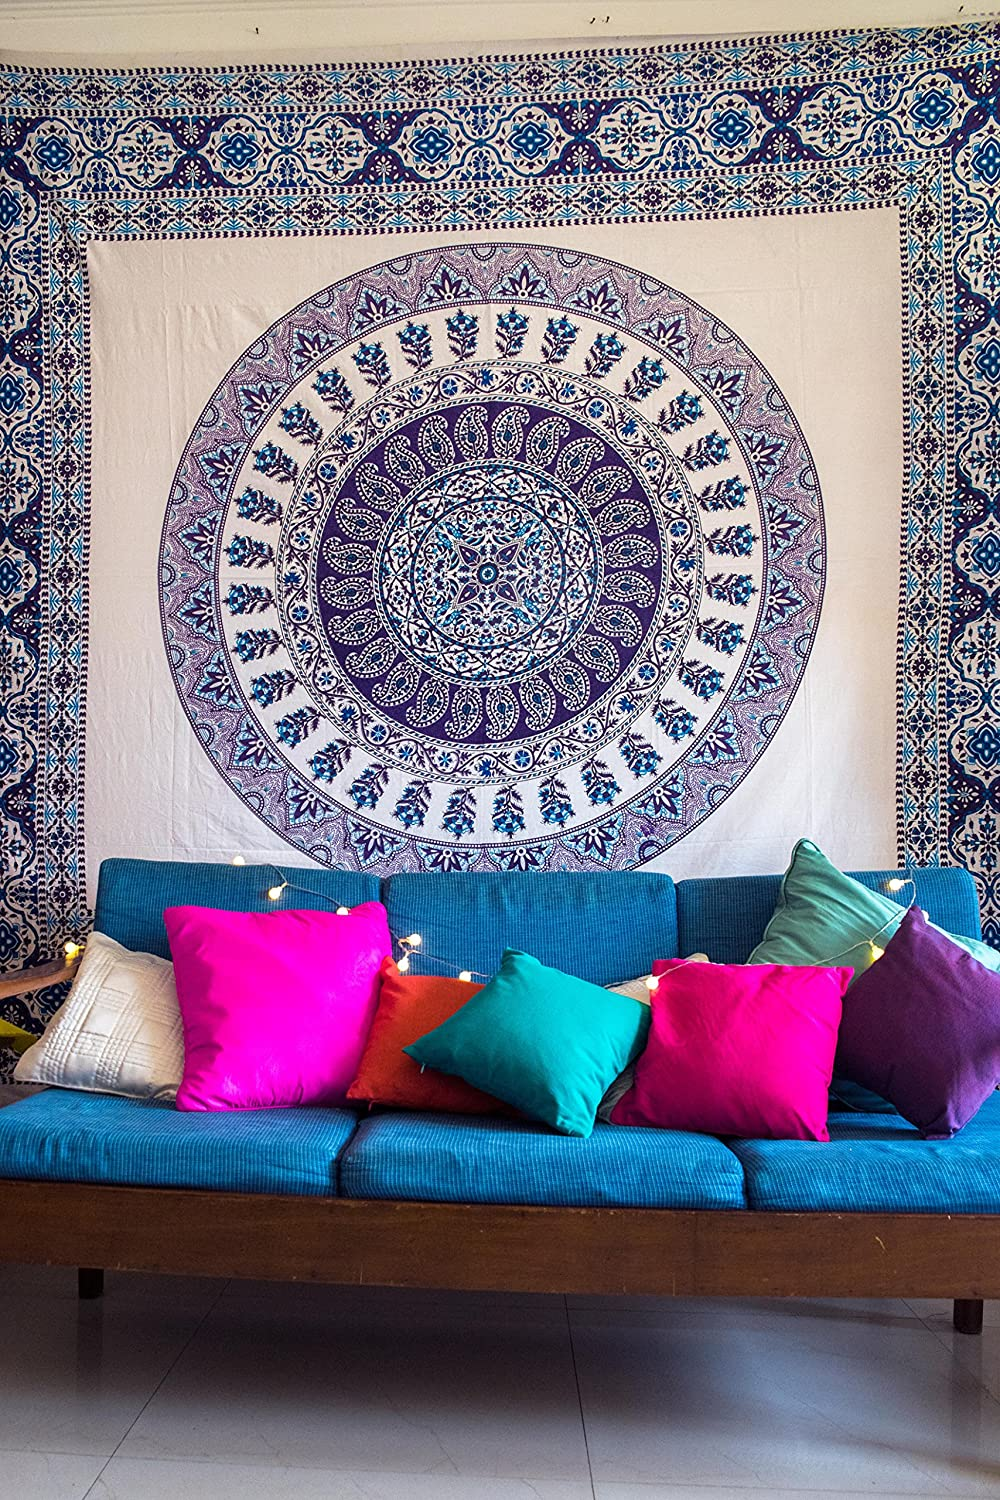 Home & Garden Fashion Style Hippie Star Mandala Cotton Floor Cushion Dog Bed Yoga Mat Couch Cover Blue Exquisite Traditional Embroidery Art Furniture